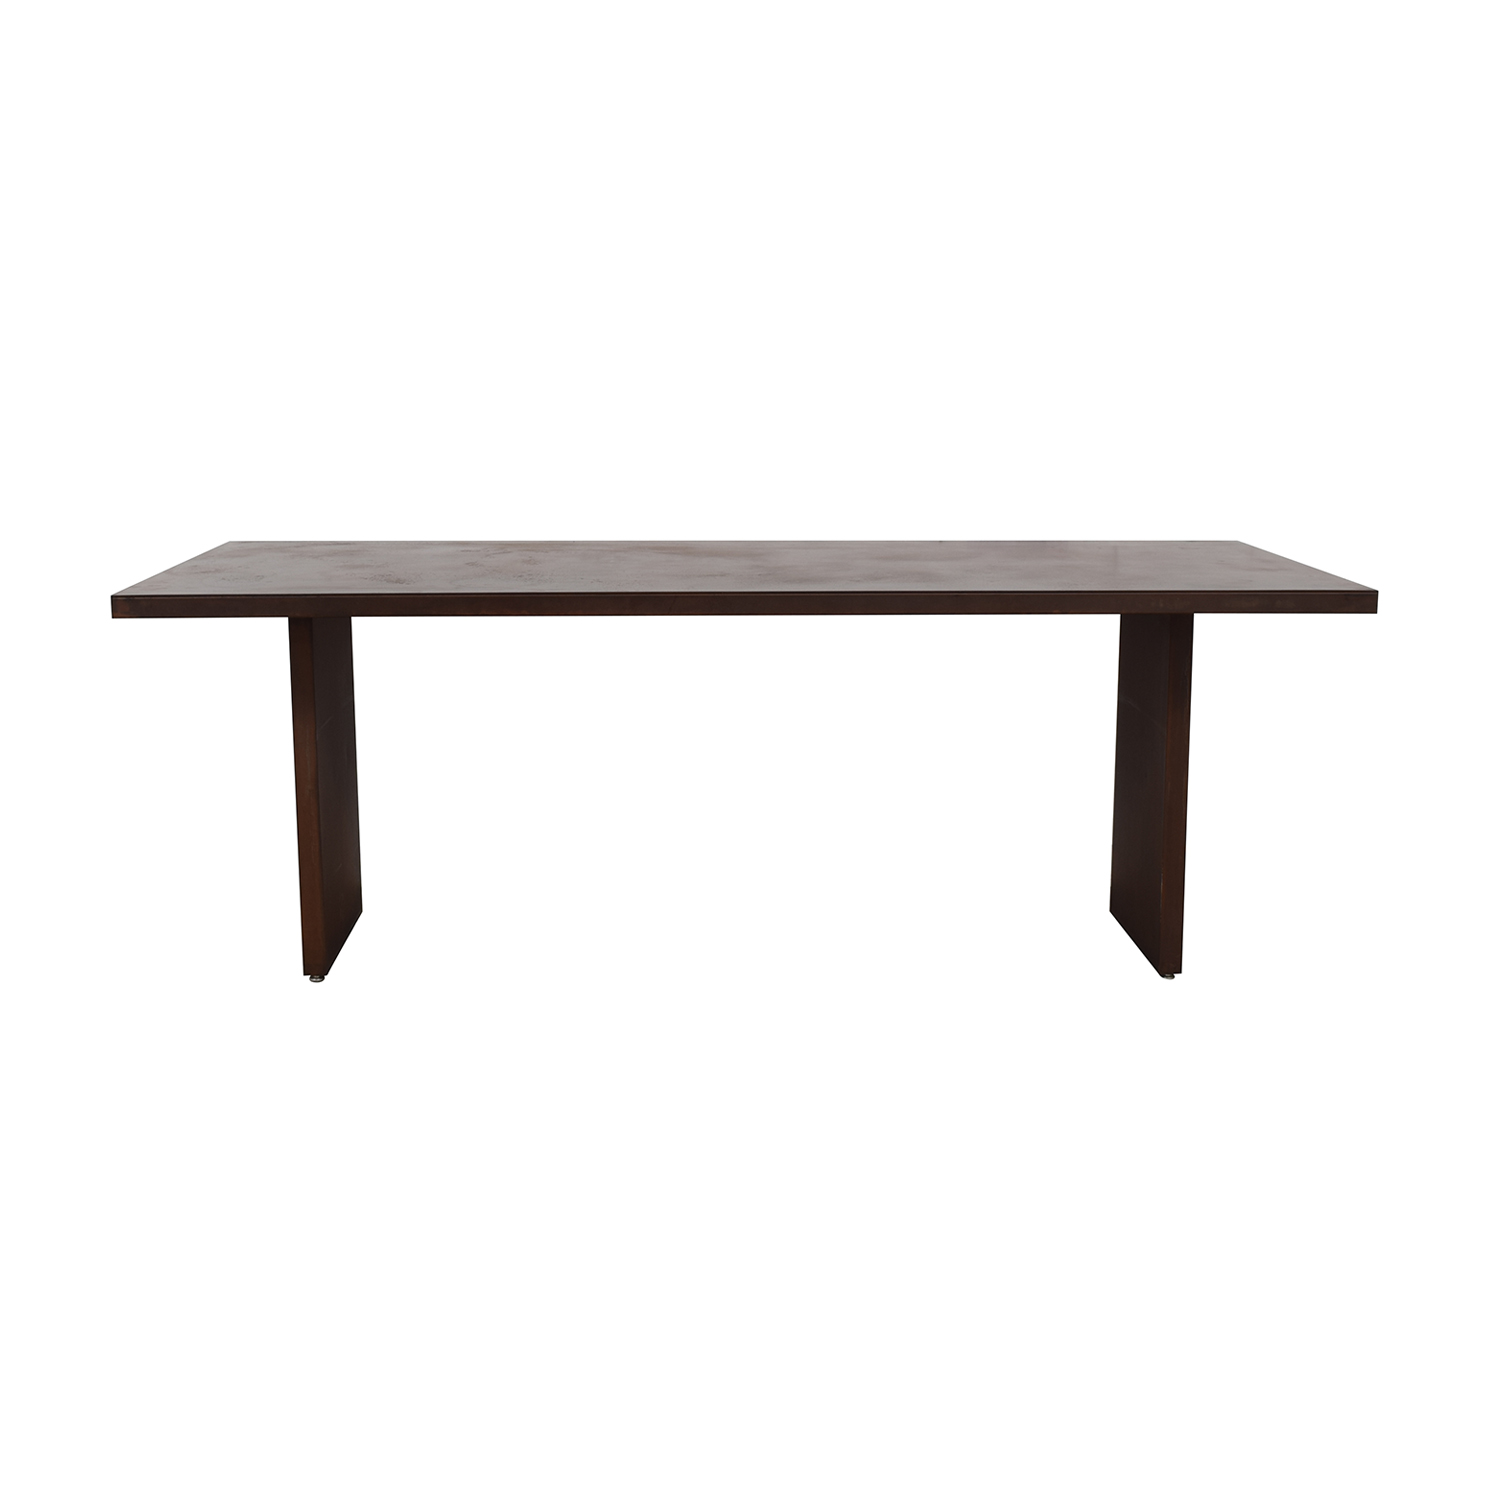 Desiron Desiron Rust-Colored Steel Dining Table price